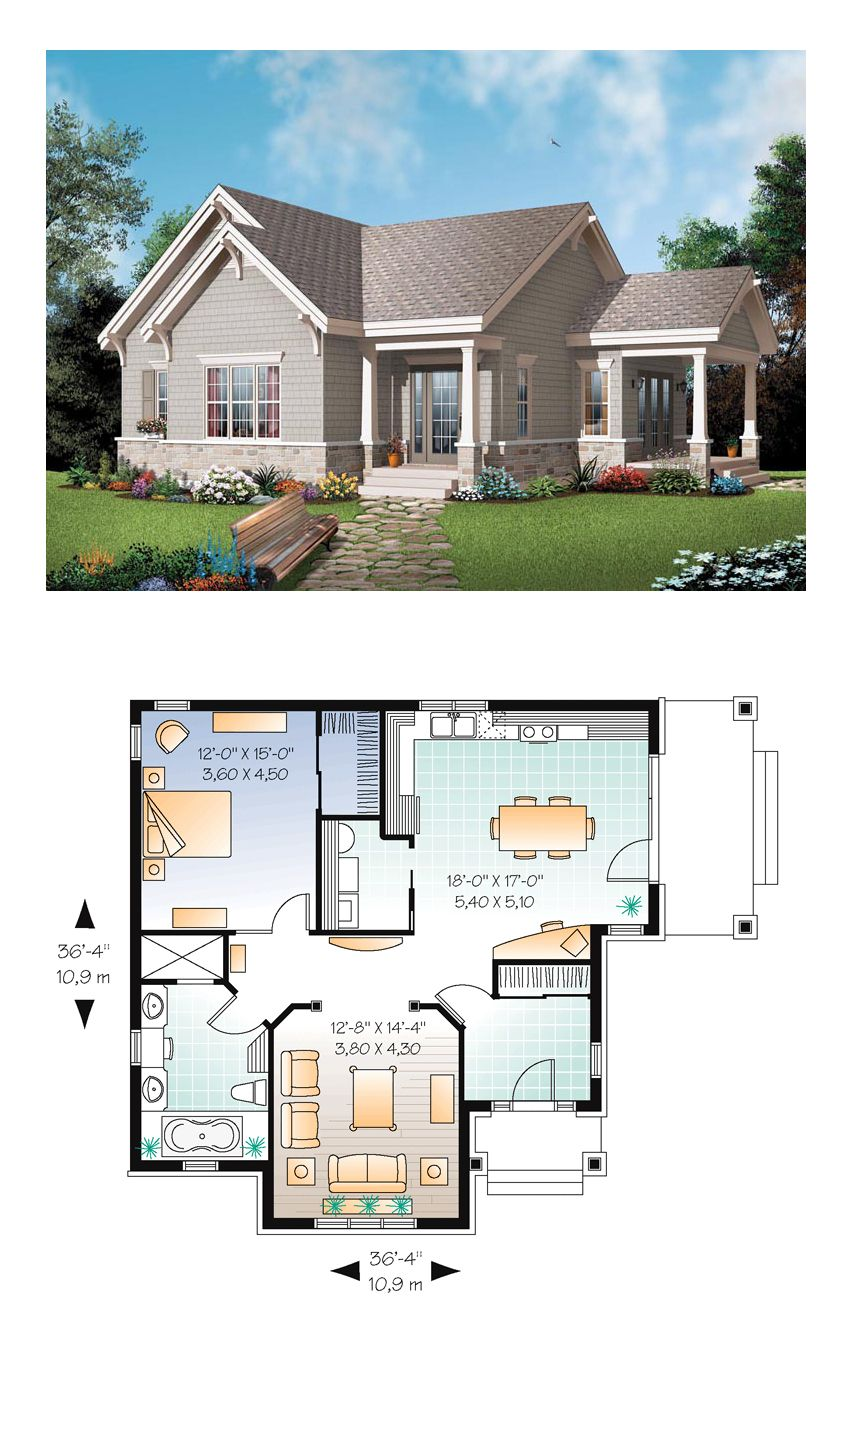 Bungalow house plan total living area sq ft